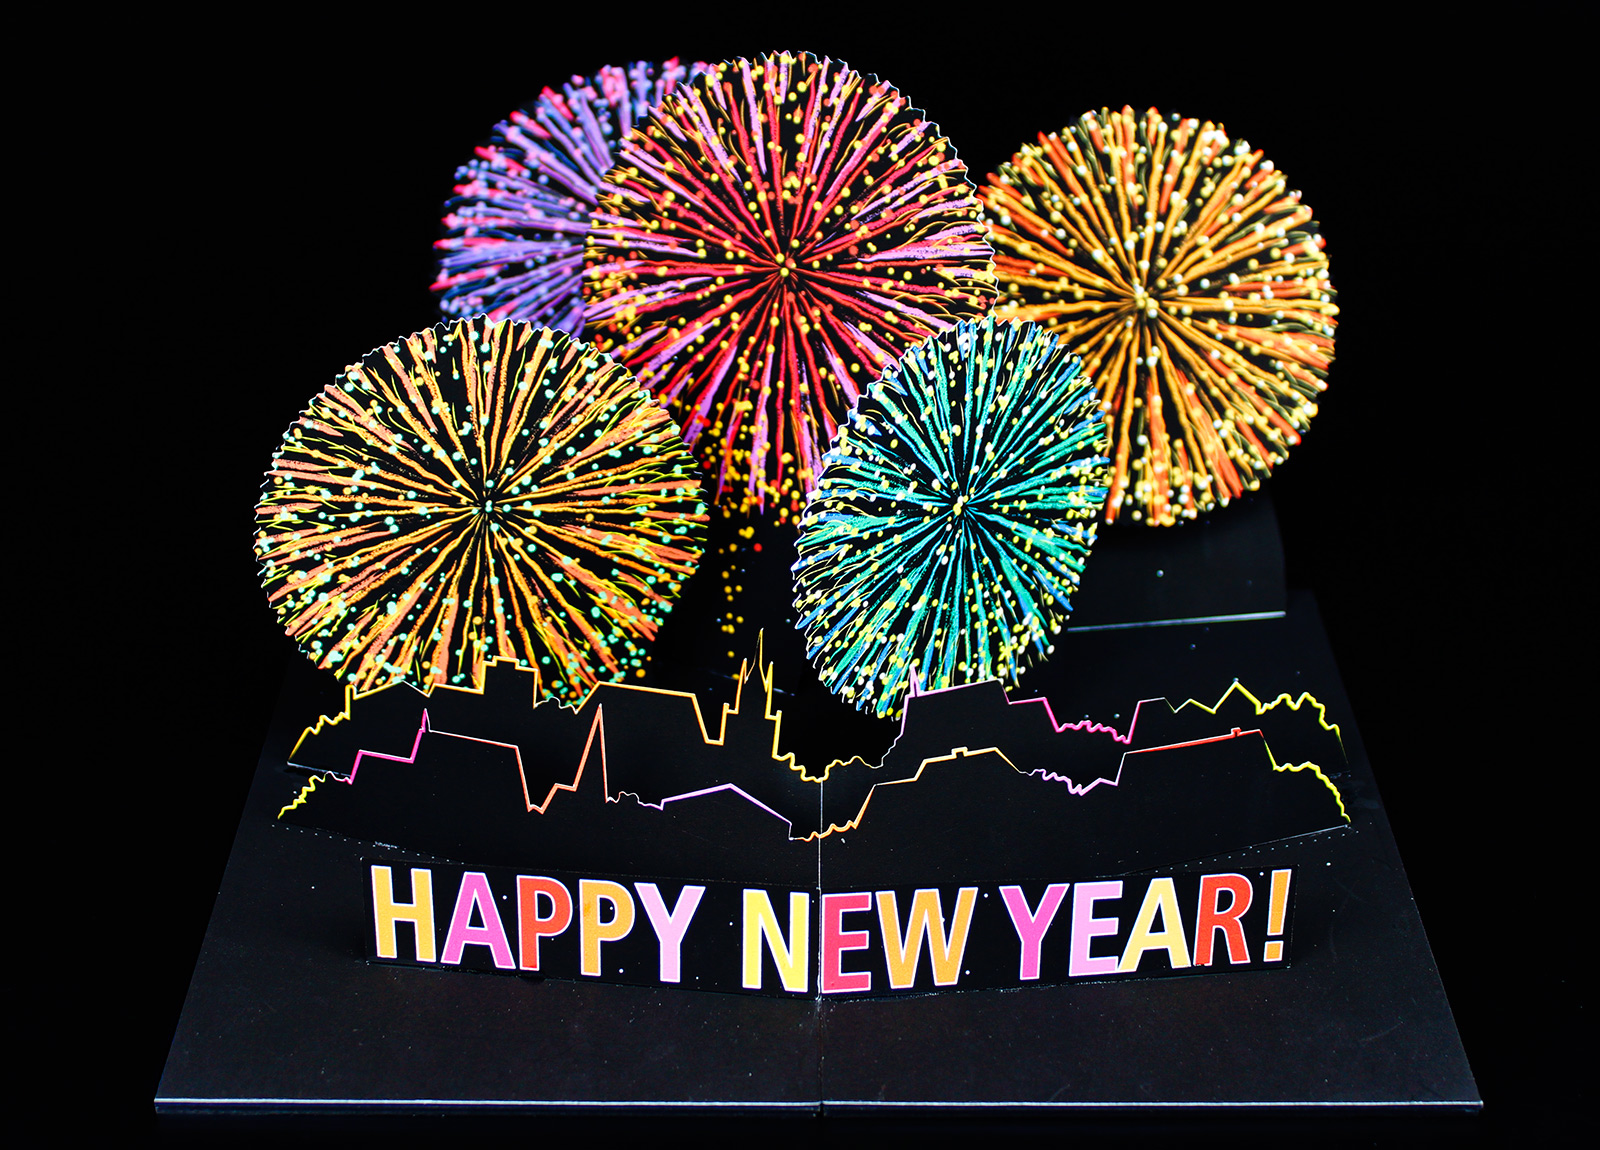 Pop Up Card Fireworks Happy New Year Peter Dahmen